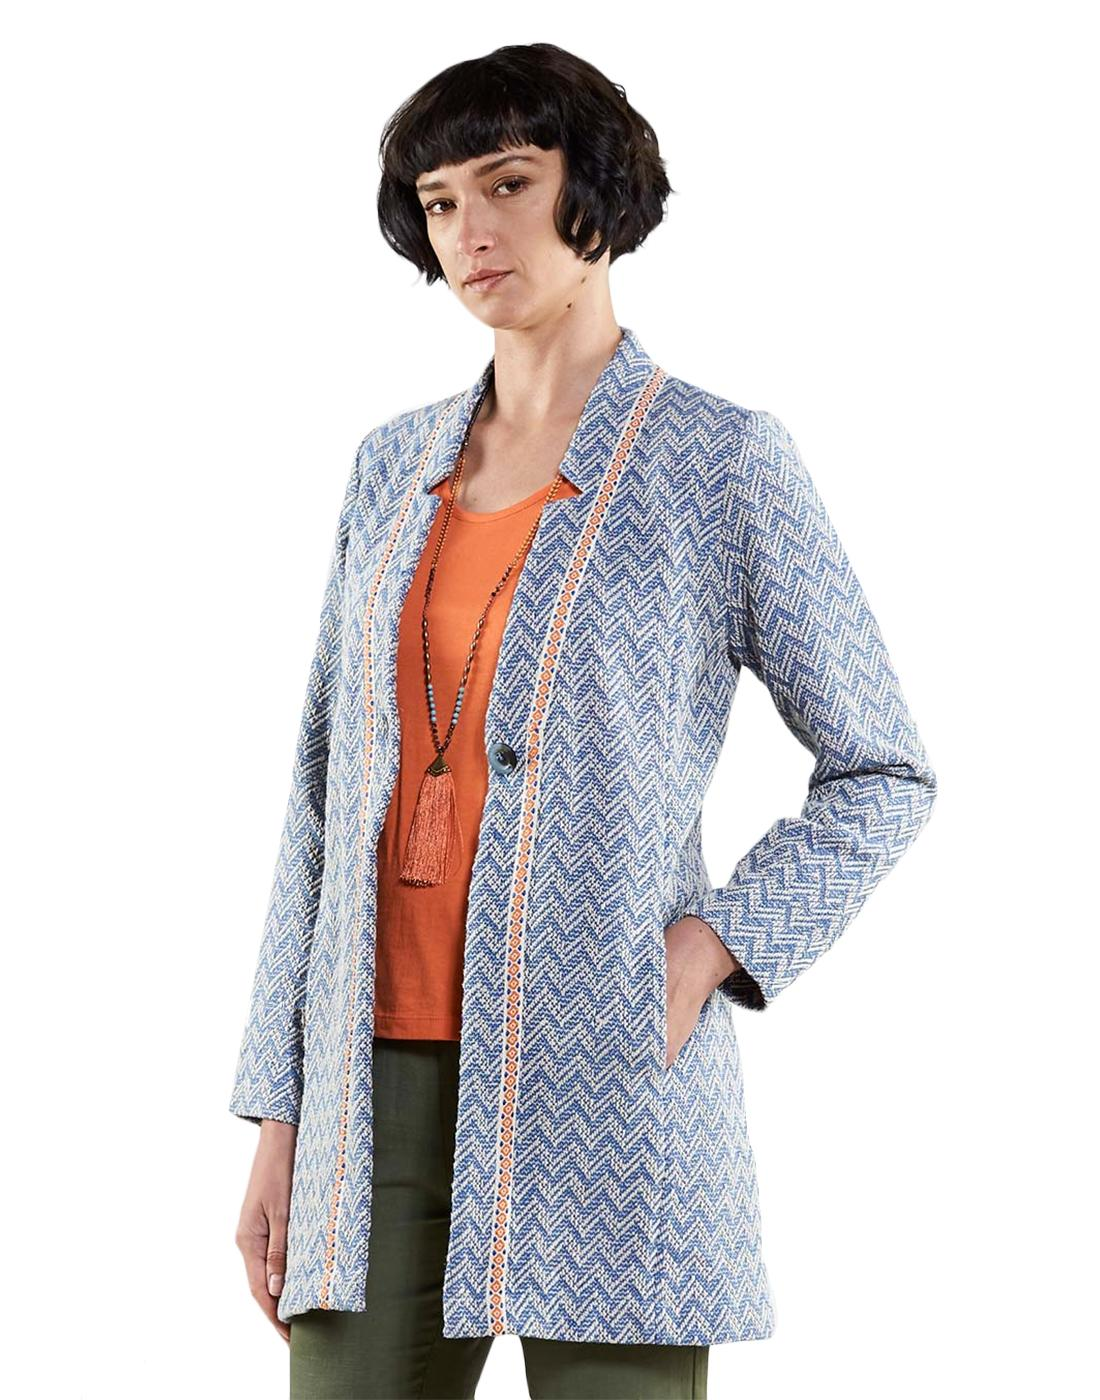 NOMADS Retro 1970's Handloom Woven Summer Jacket